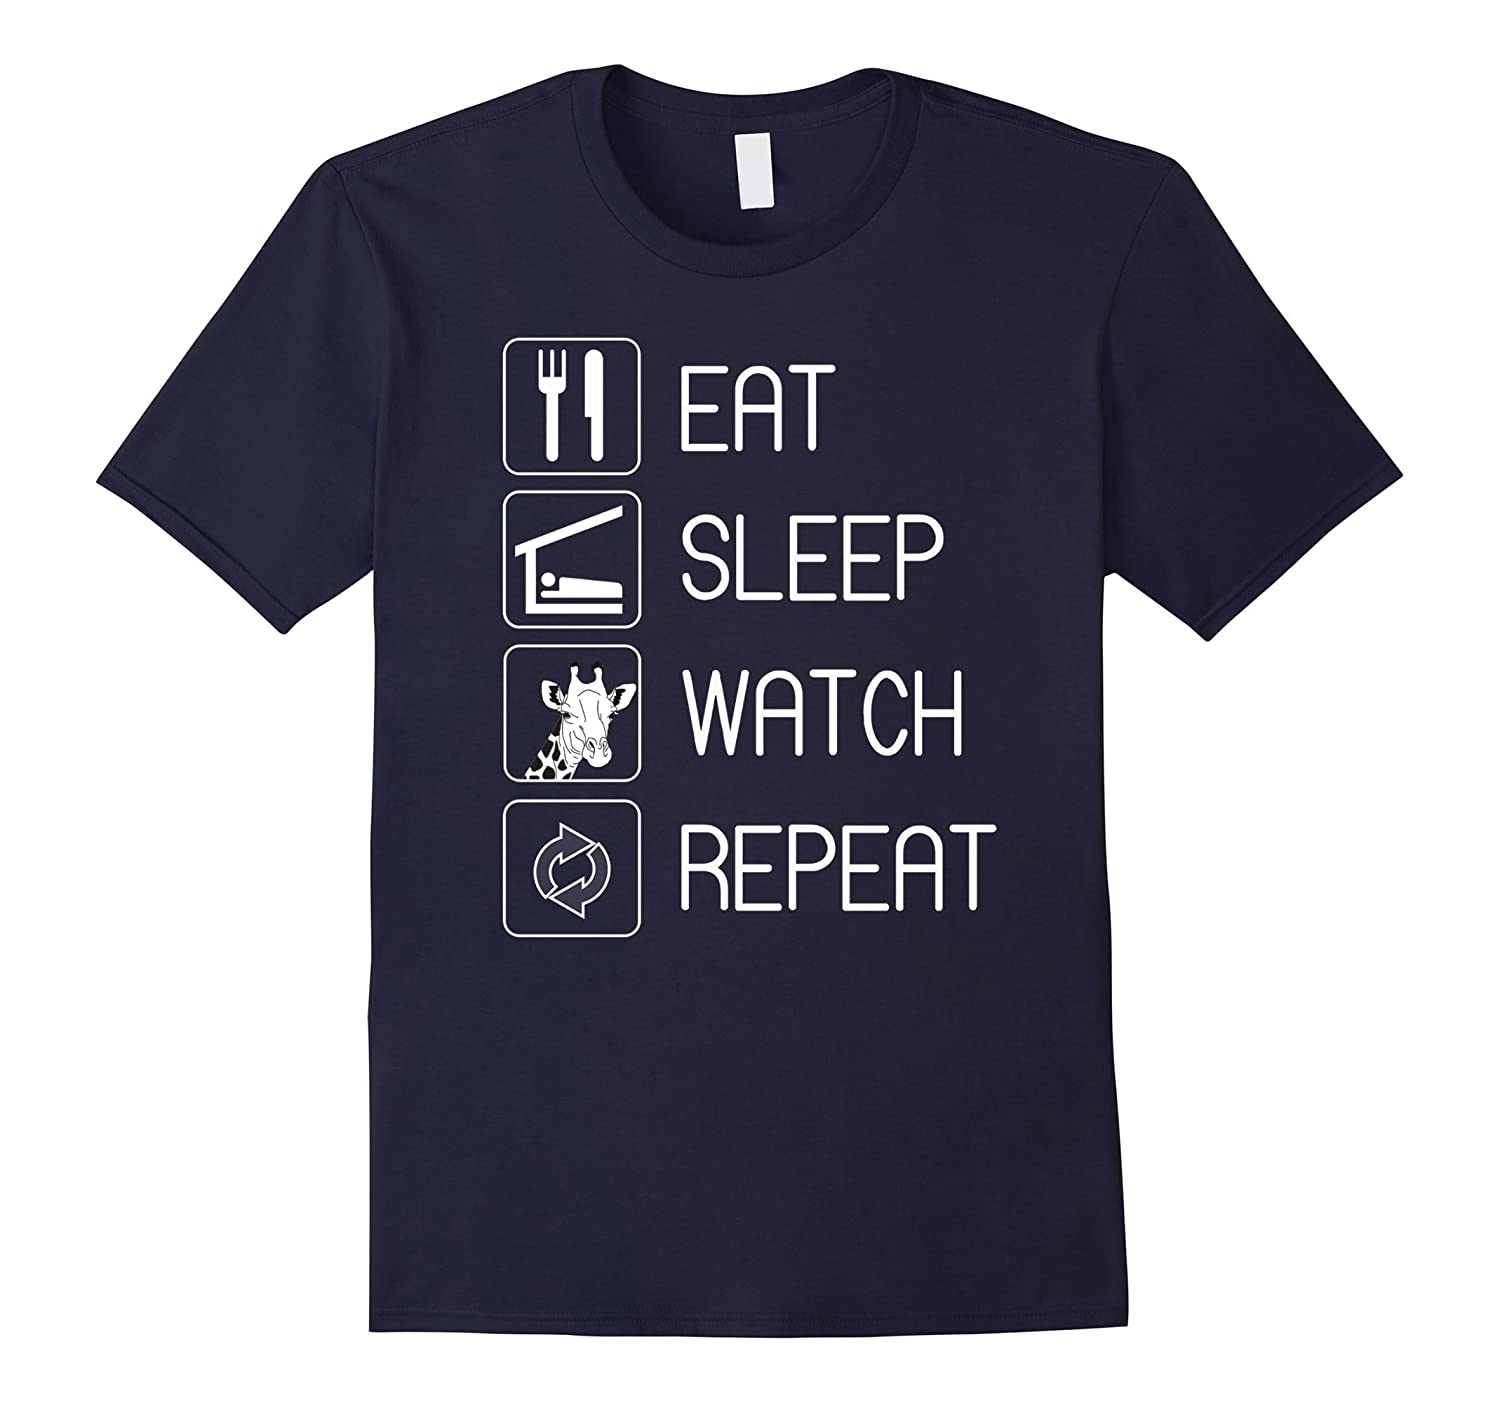 EAT SLEEP WATCH MOTHER GIRAFFE REPEAT TSHIRT-Vaci